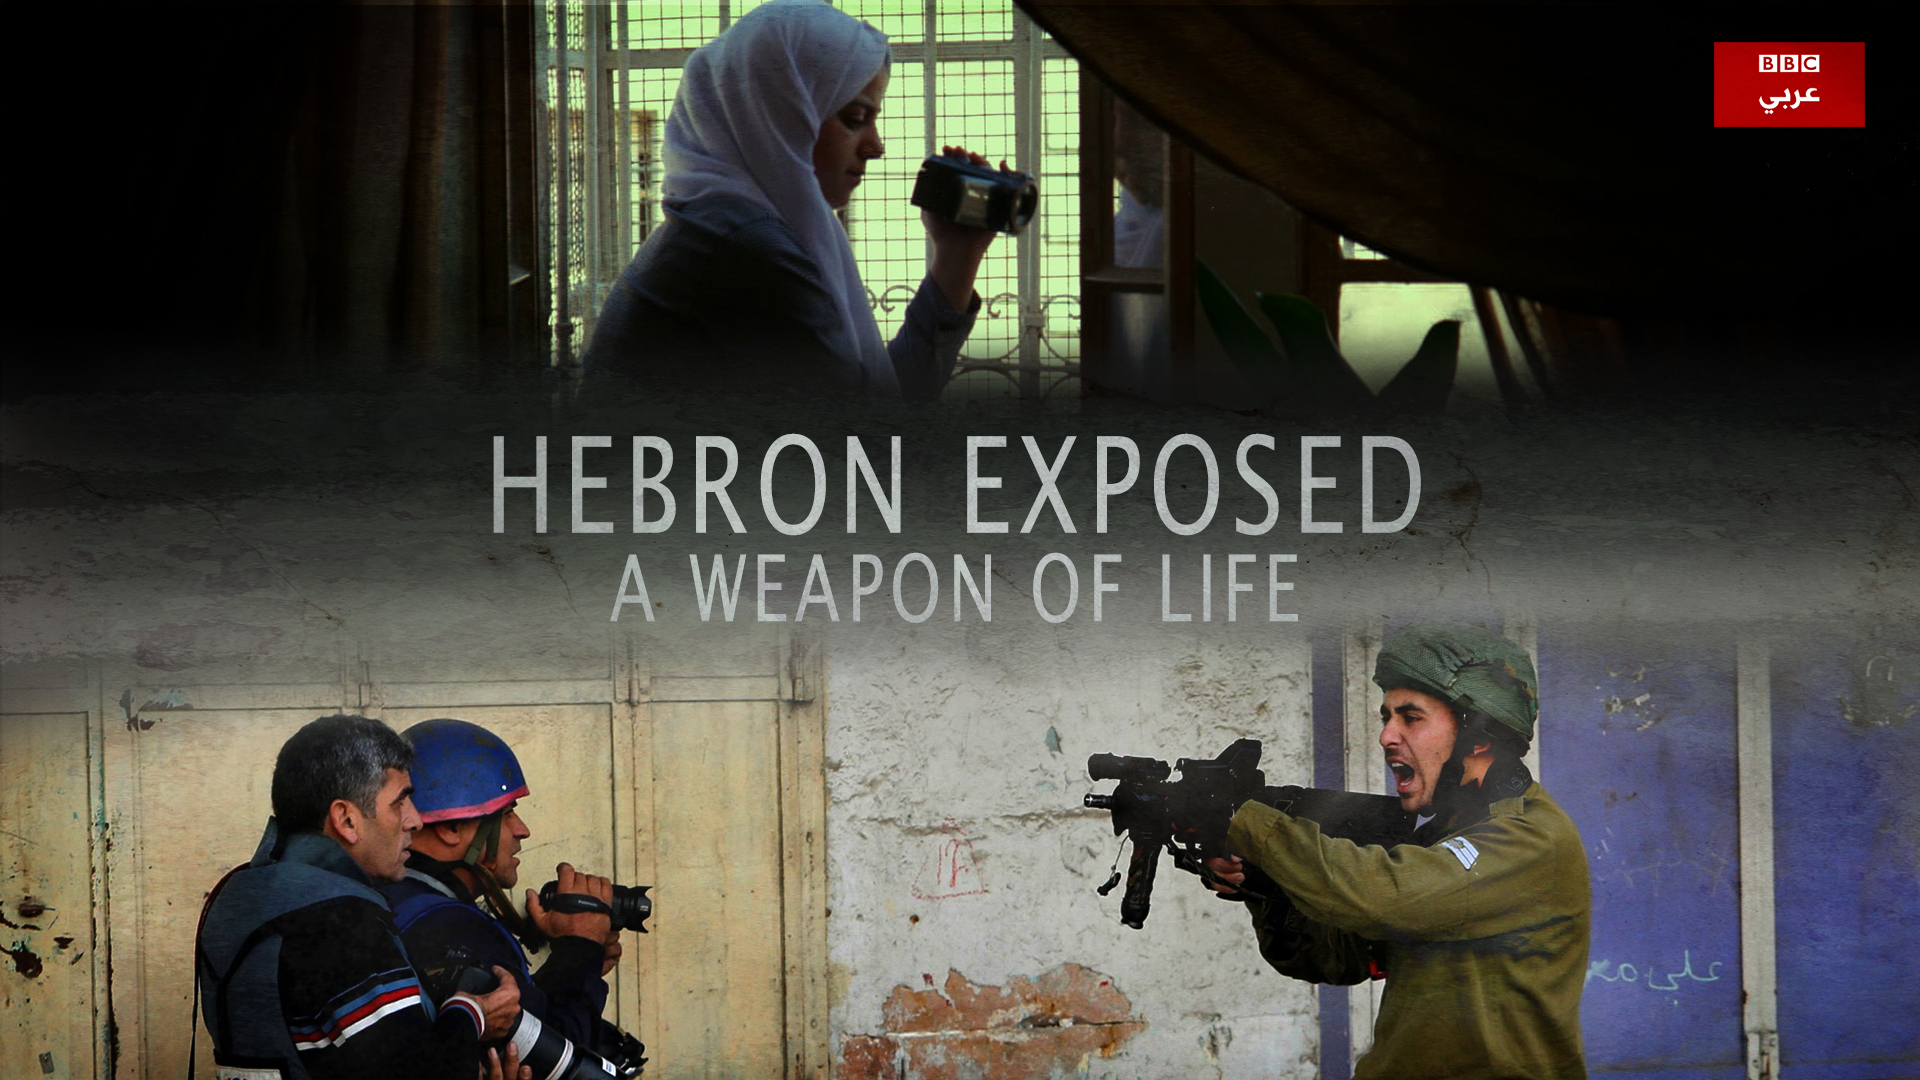 Hebron Exposed: A Weapon of Life